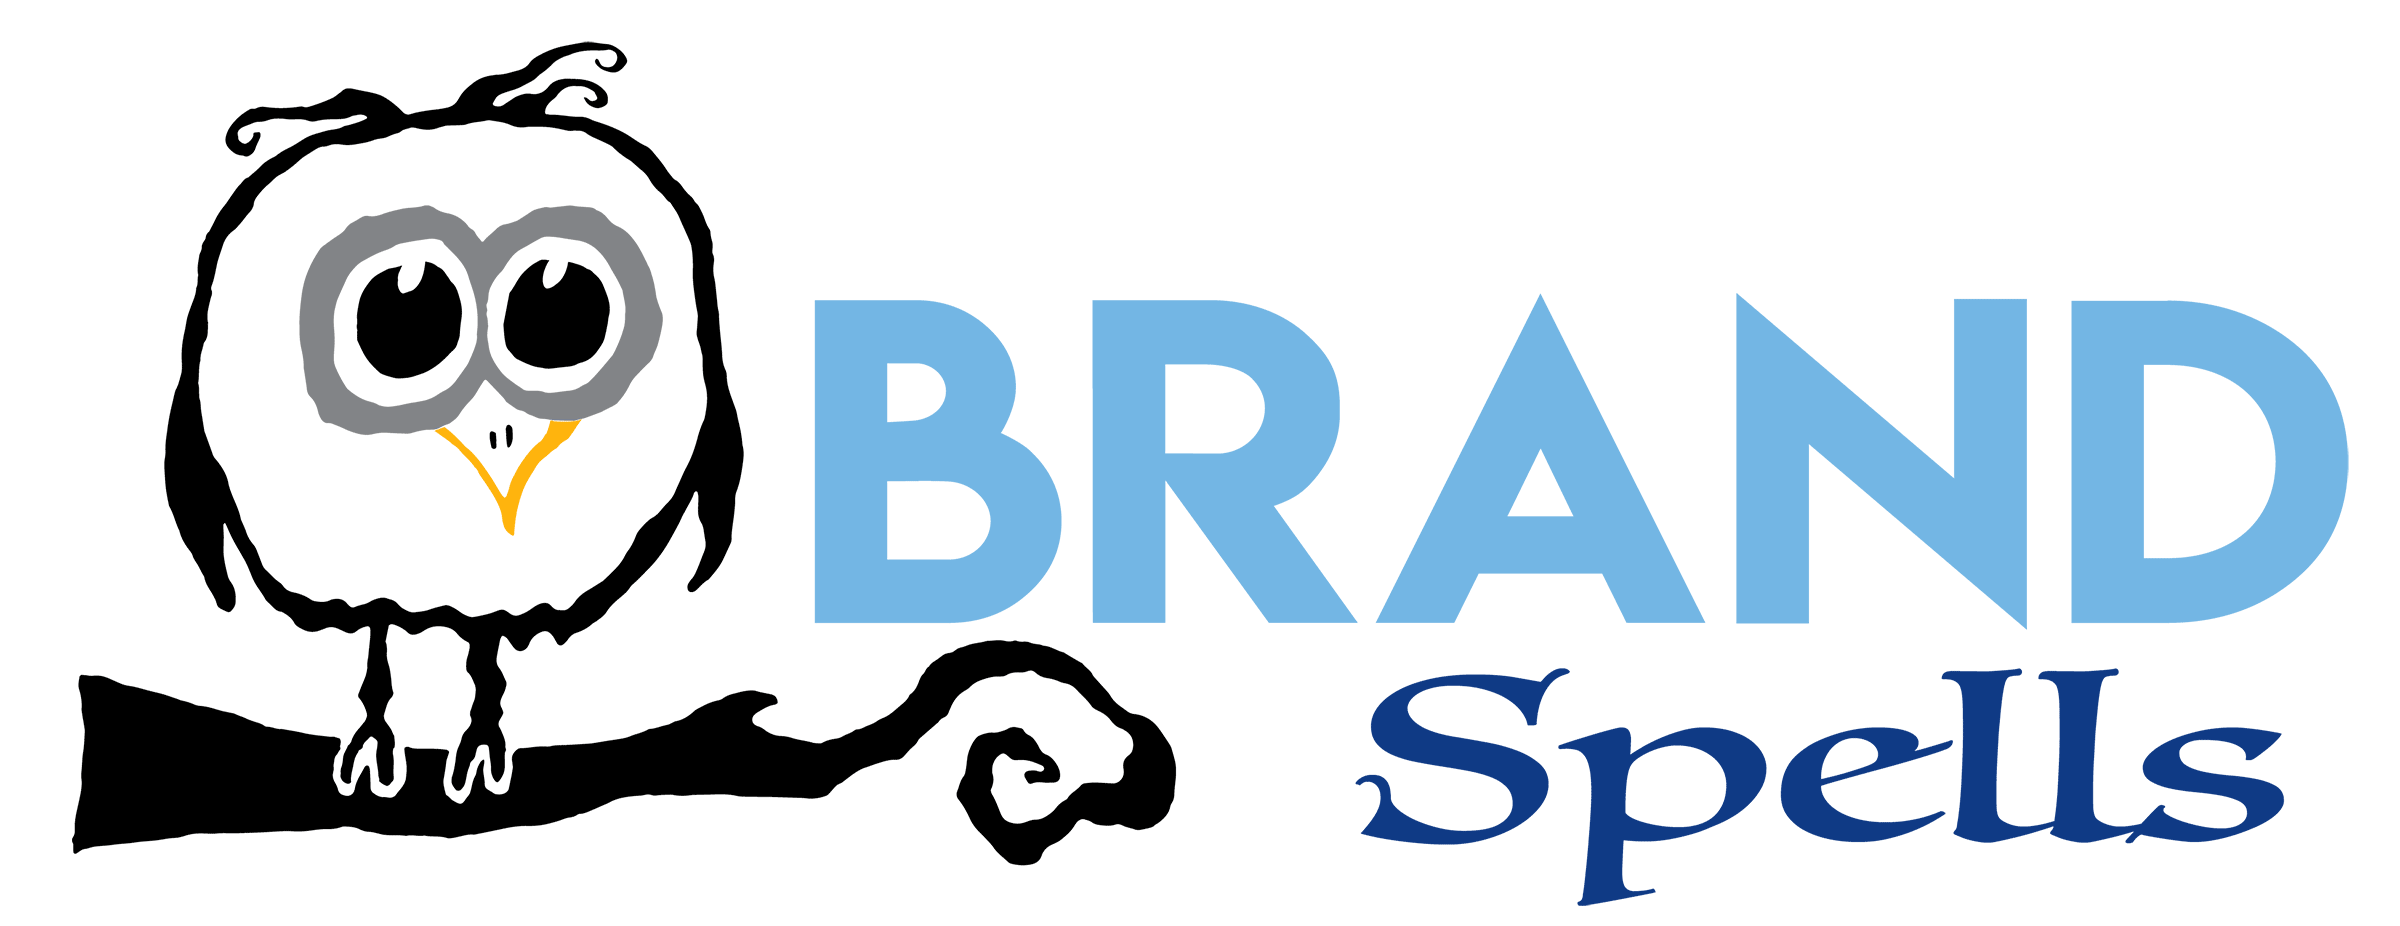 Brand Spells is a search engine optimization (SEO) and content creation advertising agency.